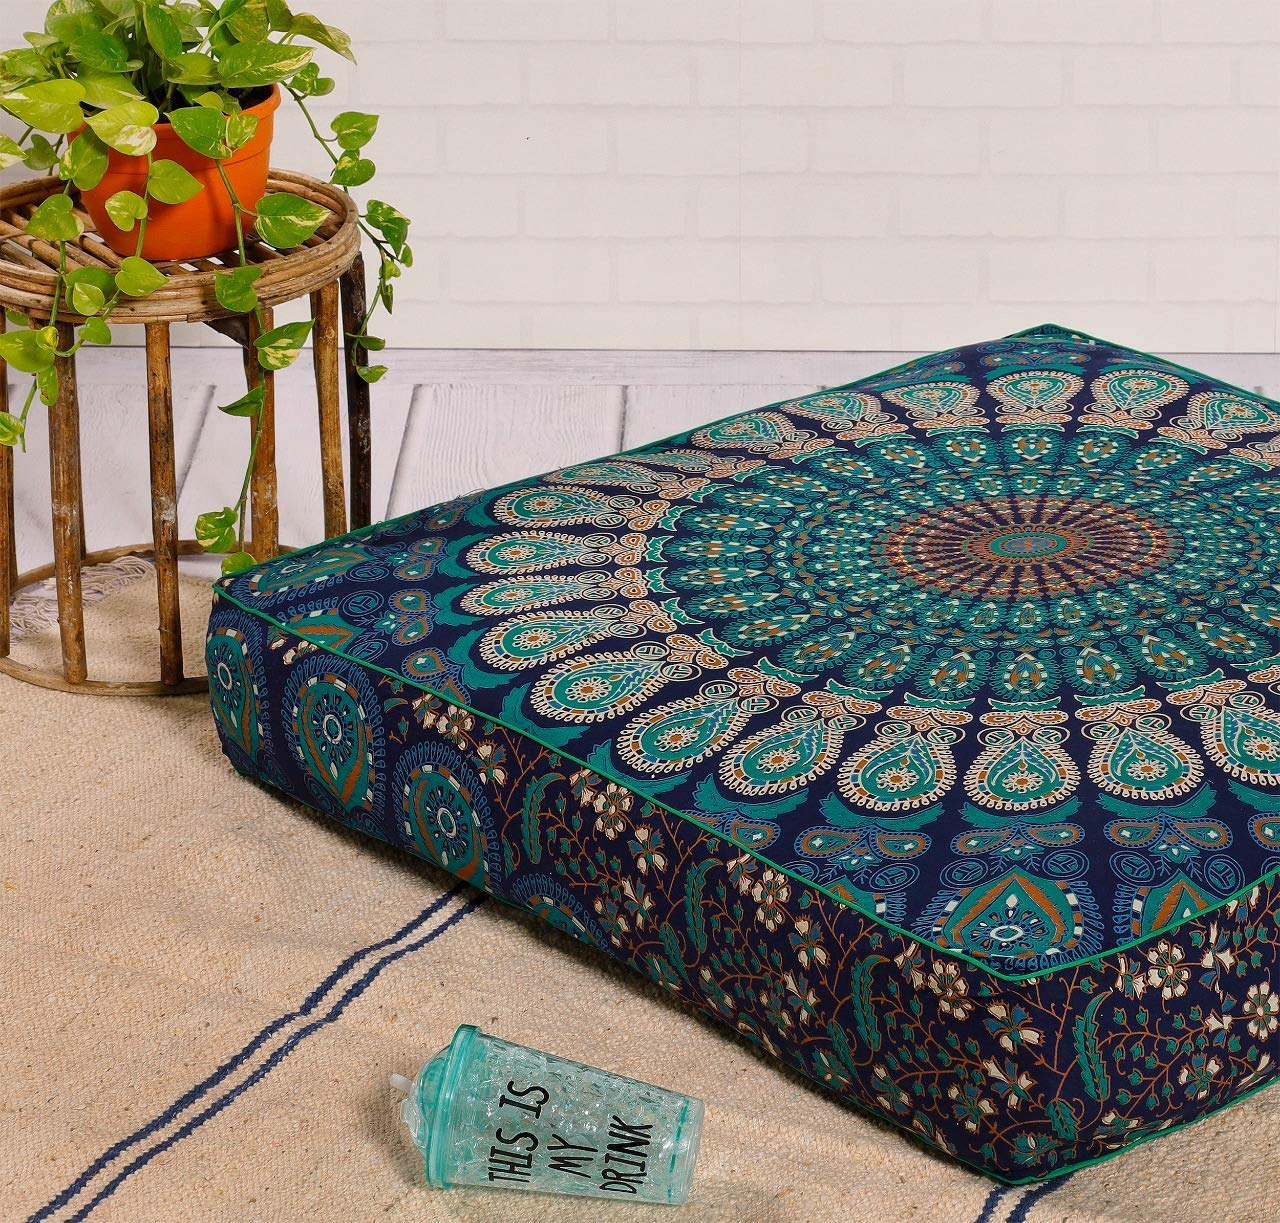 Indian Mandala Floor Pillow Duty Zipper Seating Cover Square Ottoman Pouf Cover Daybed Oversized Cotton Cushion Cover with Heavy Ottoman Poufs Dog-Pets Bed 35'' by Hemsi-77